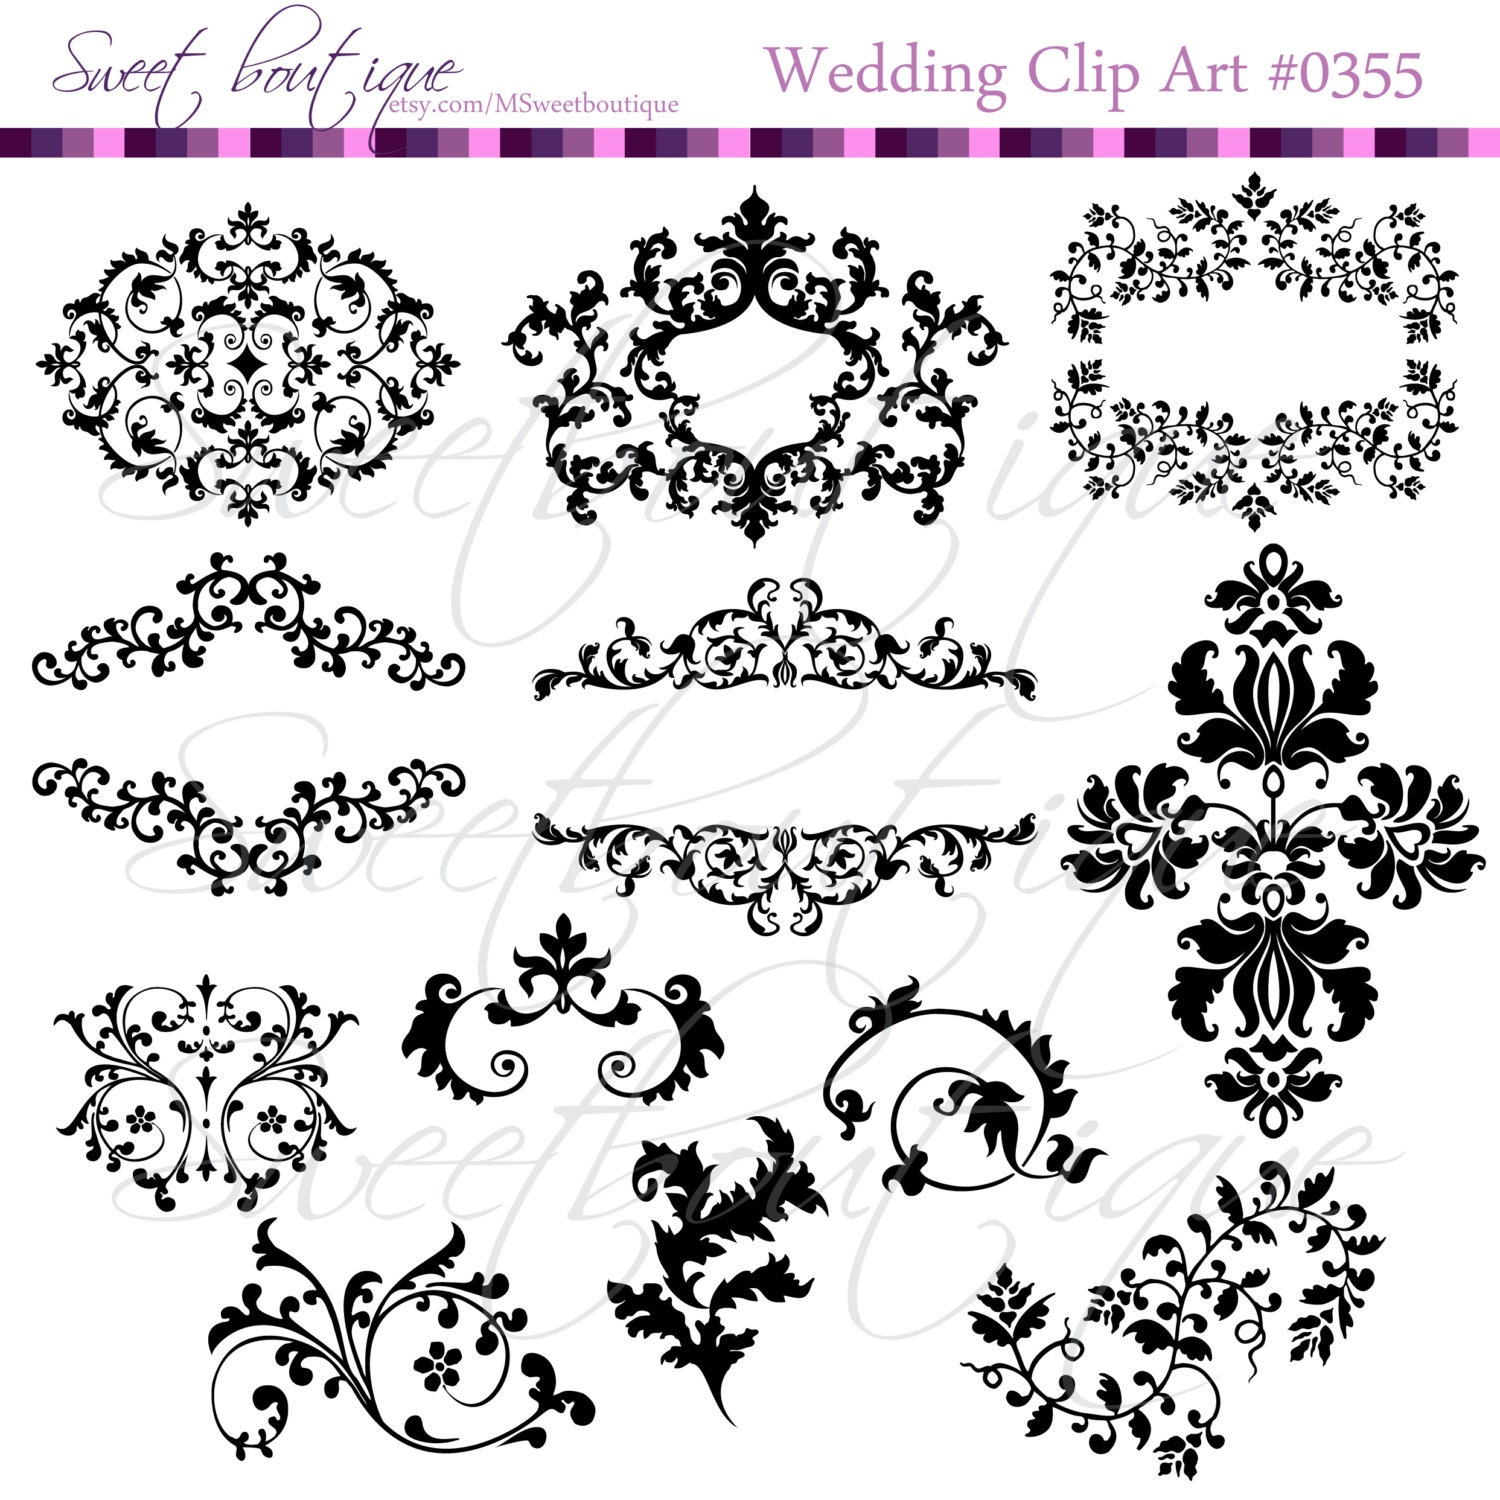 Wedding Clip Art: Wedding Digital Frames Clip Art Clipart Scrapbook Invitation